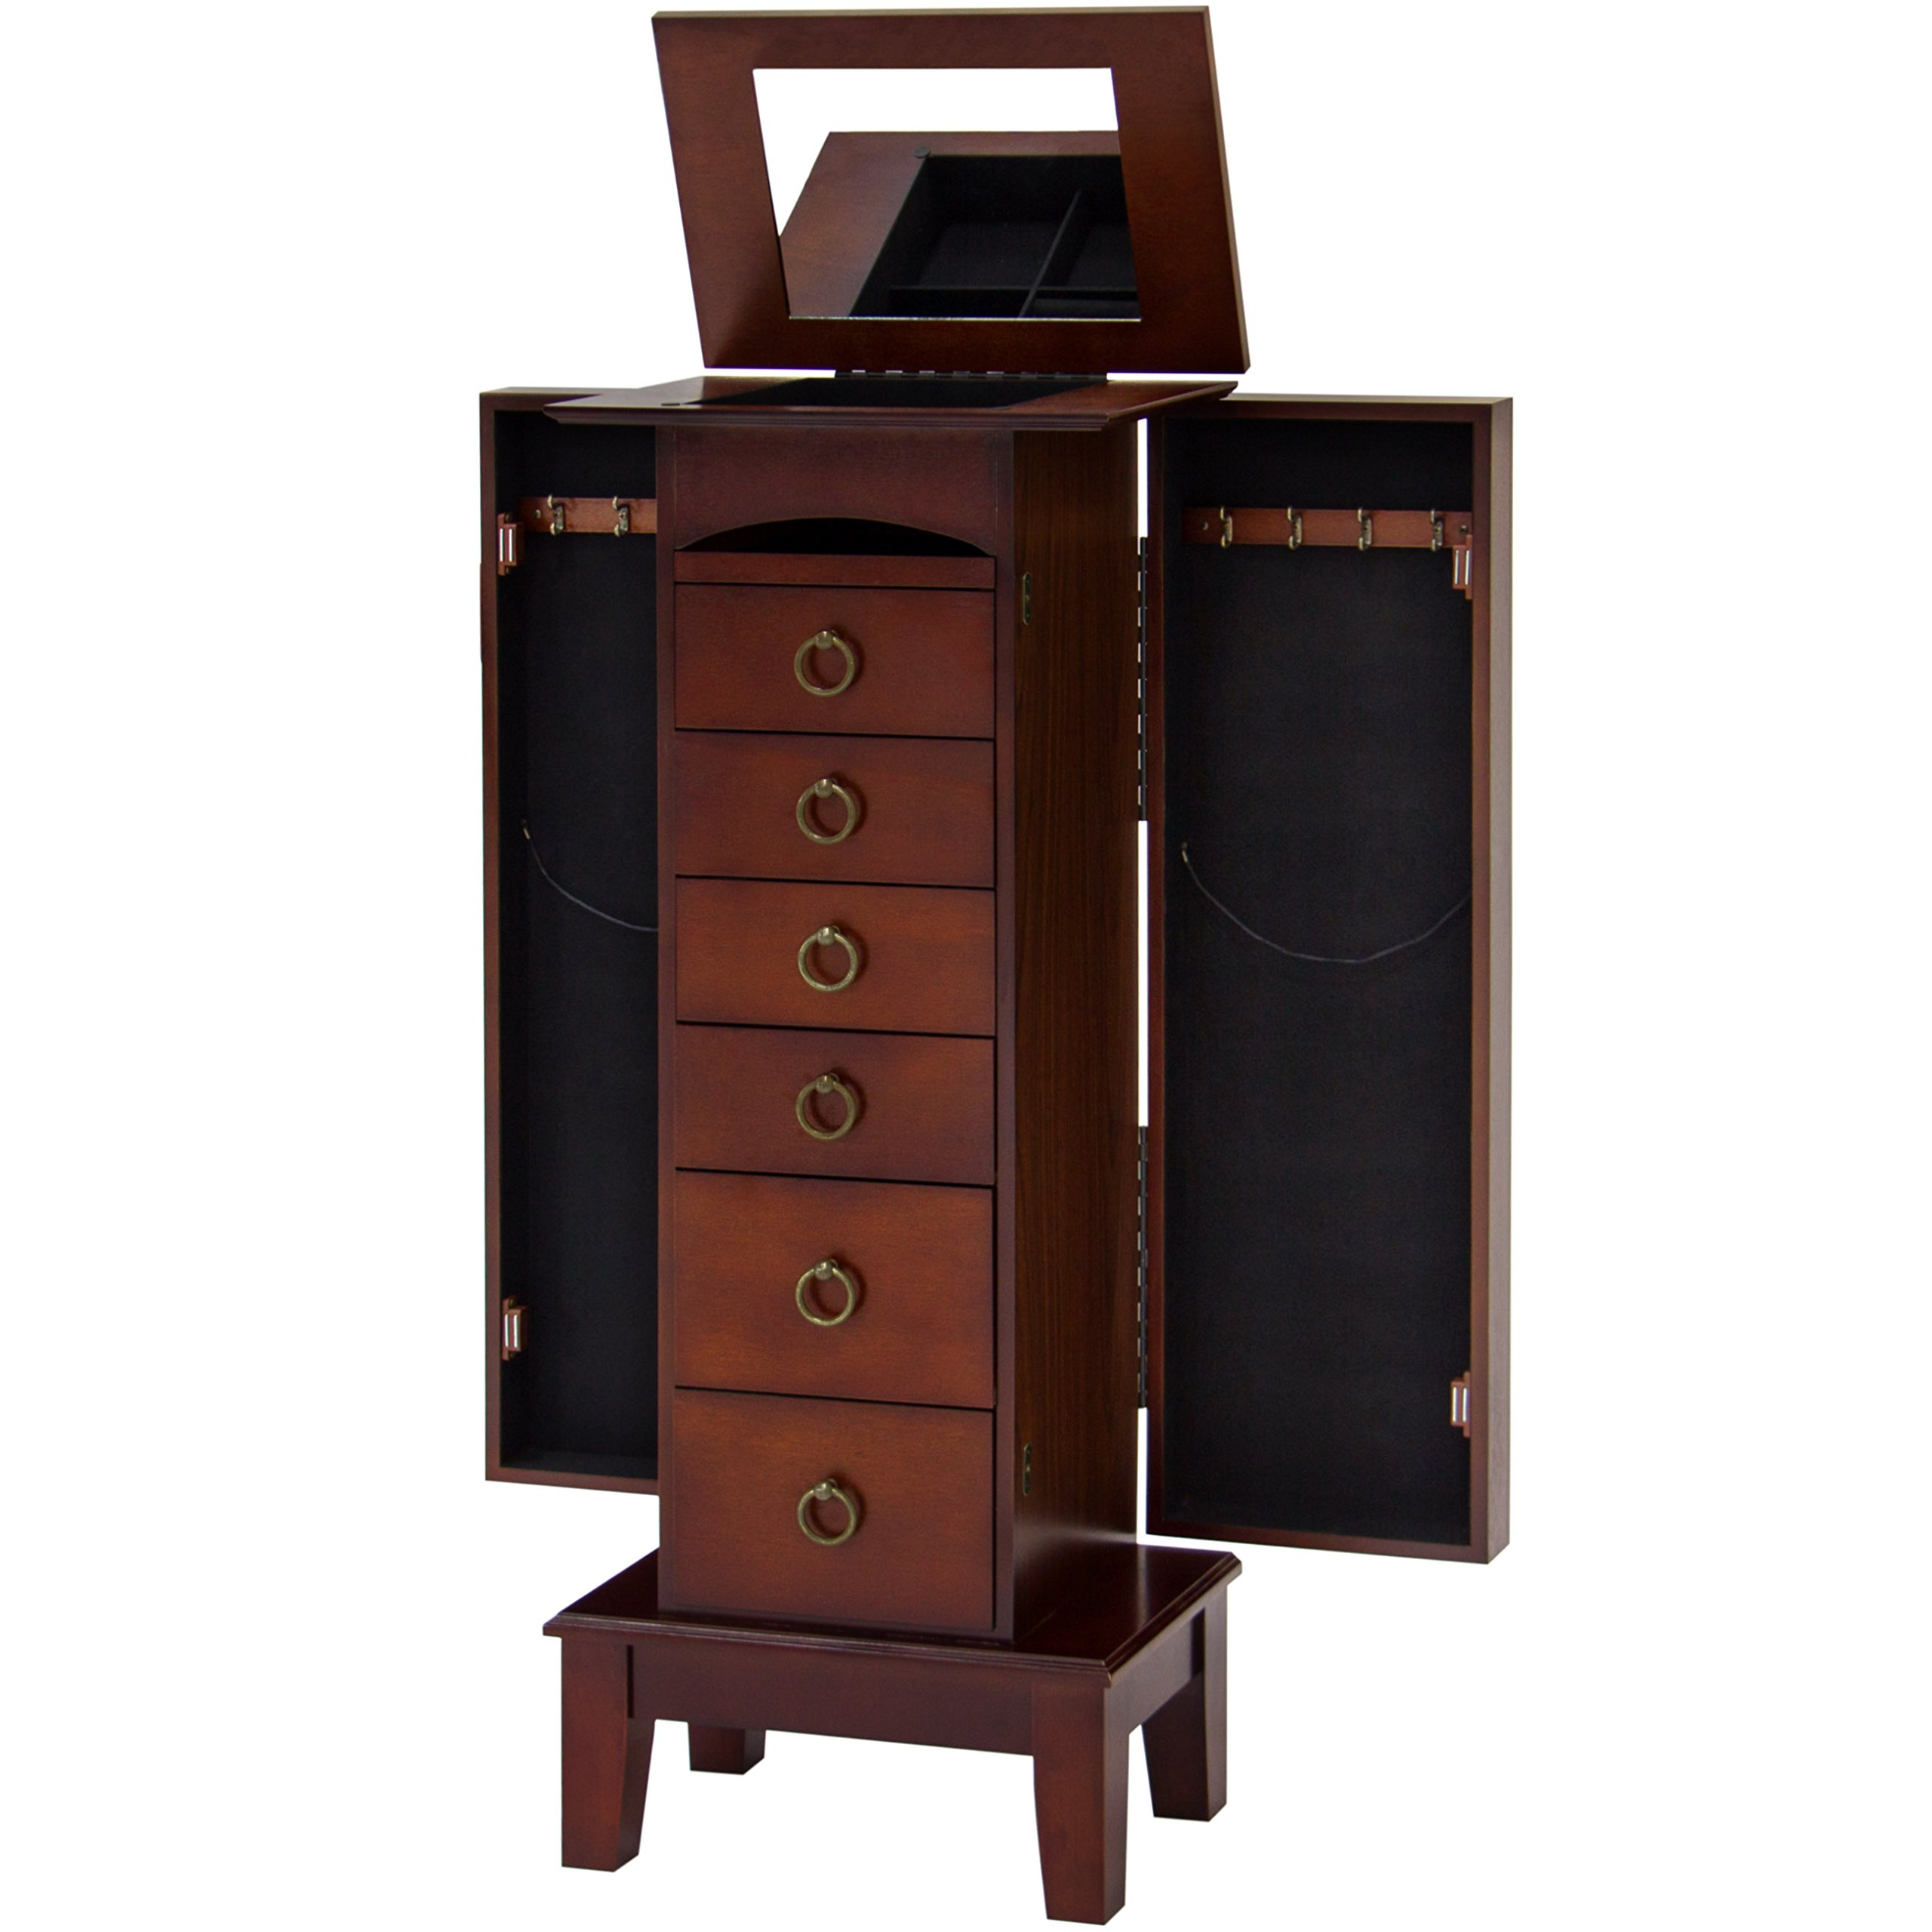 Best Choice Products Wooden Standing Jewelry Armoire Cabinet Chest Organizer